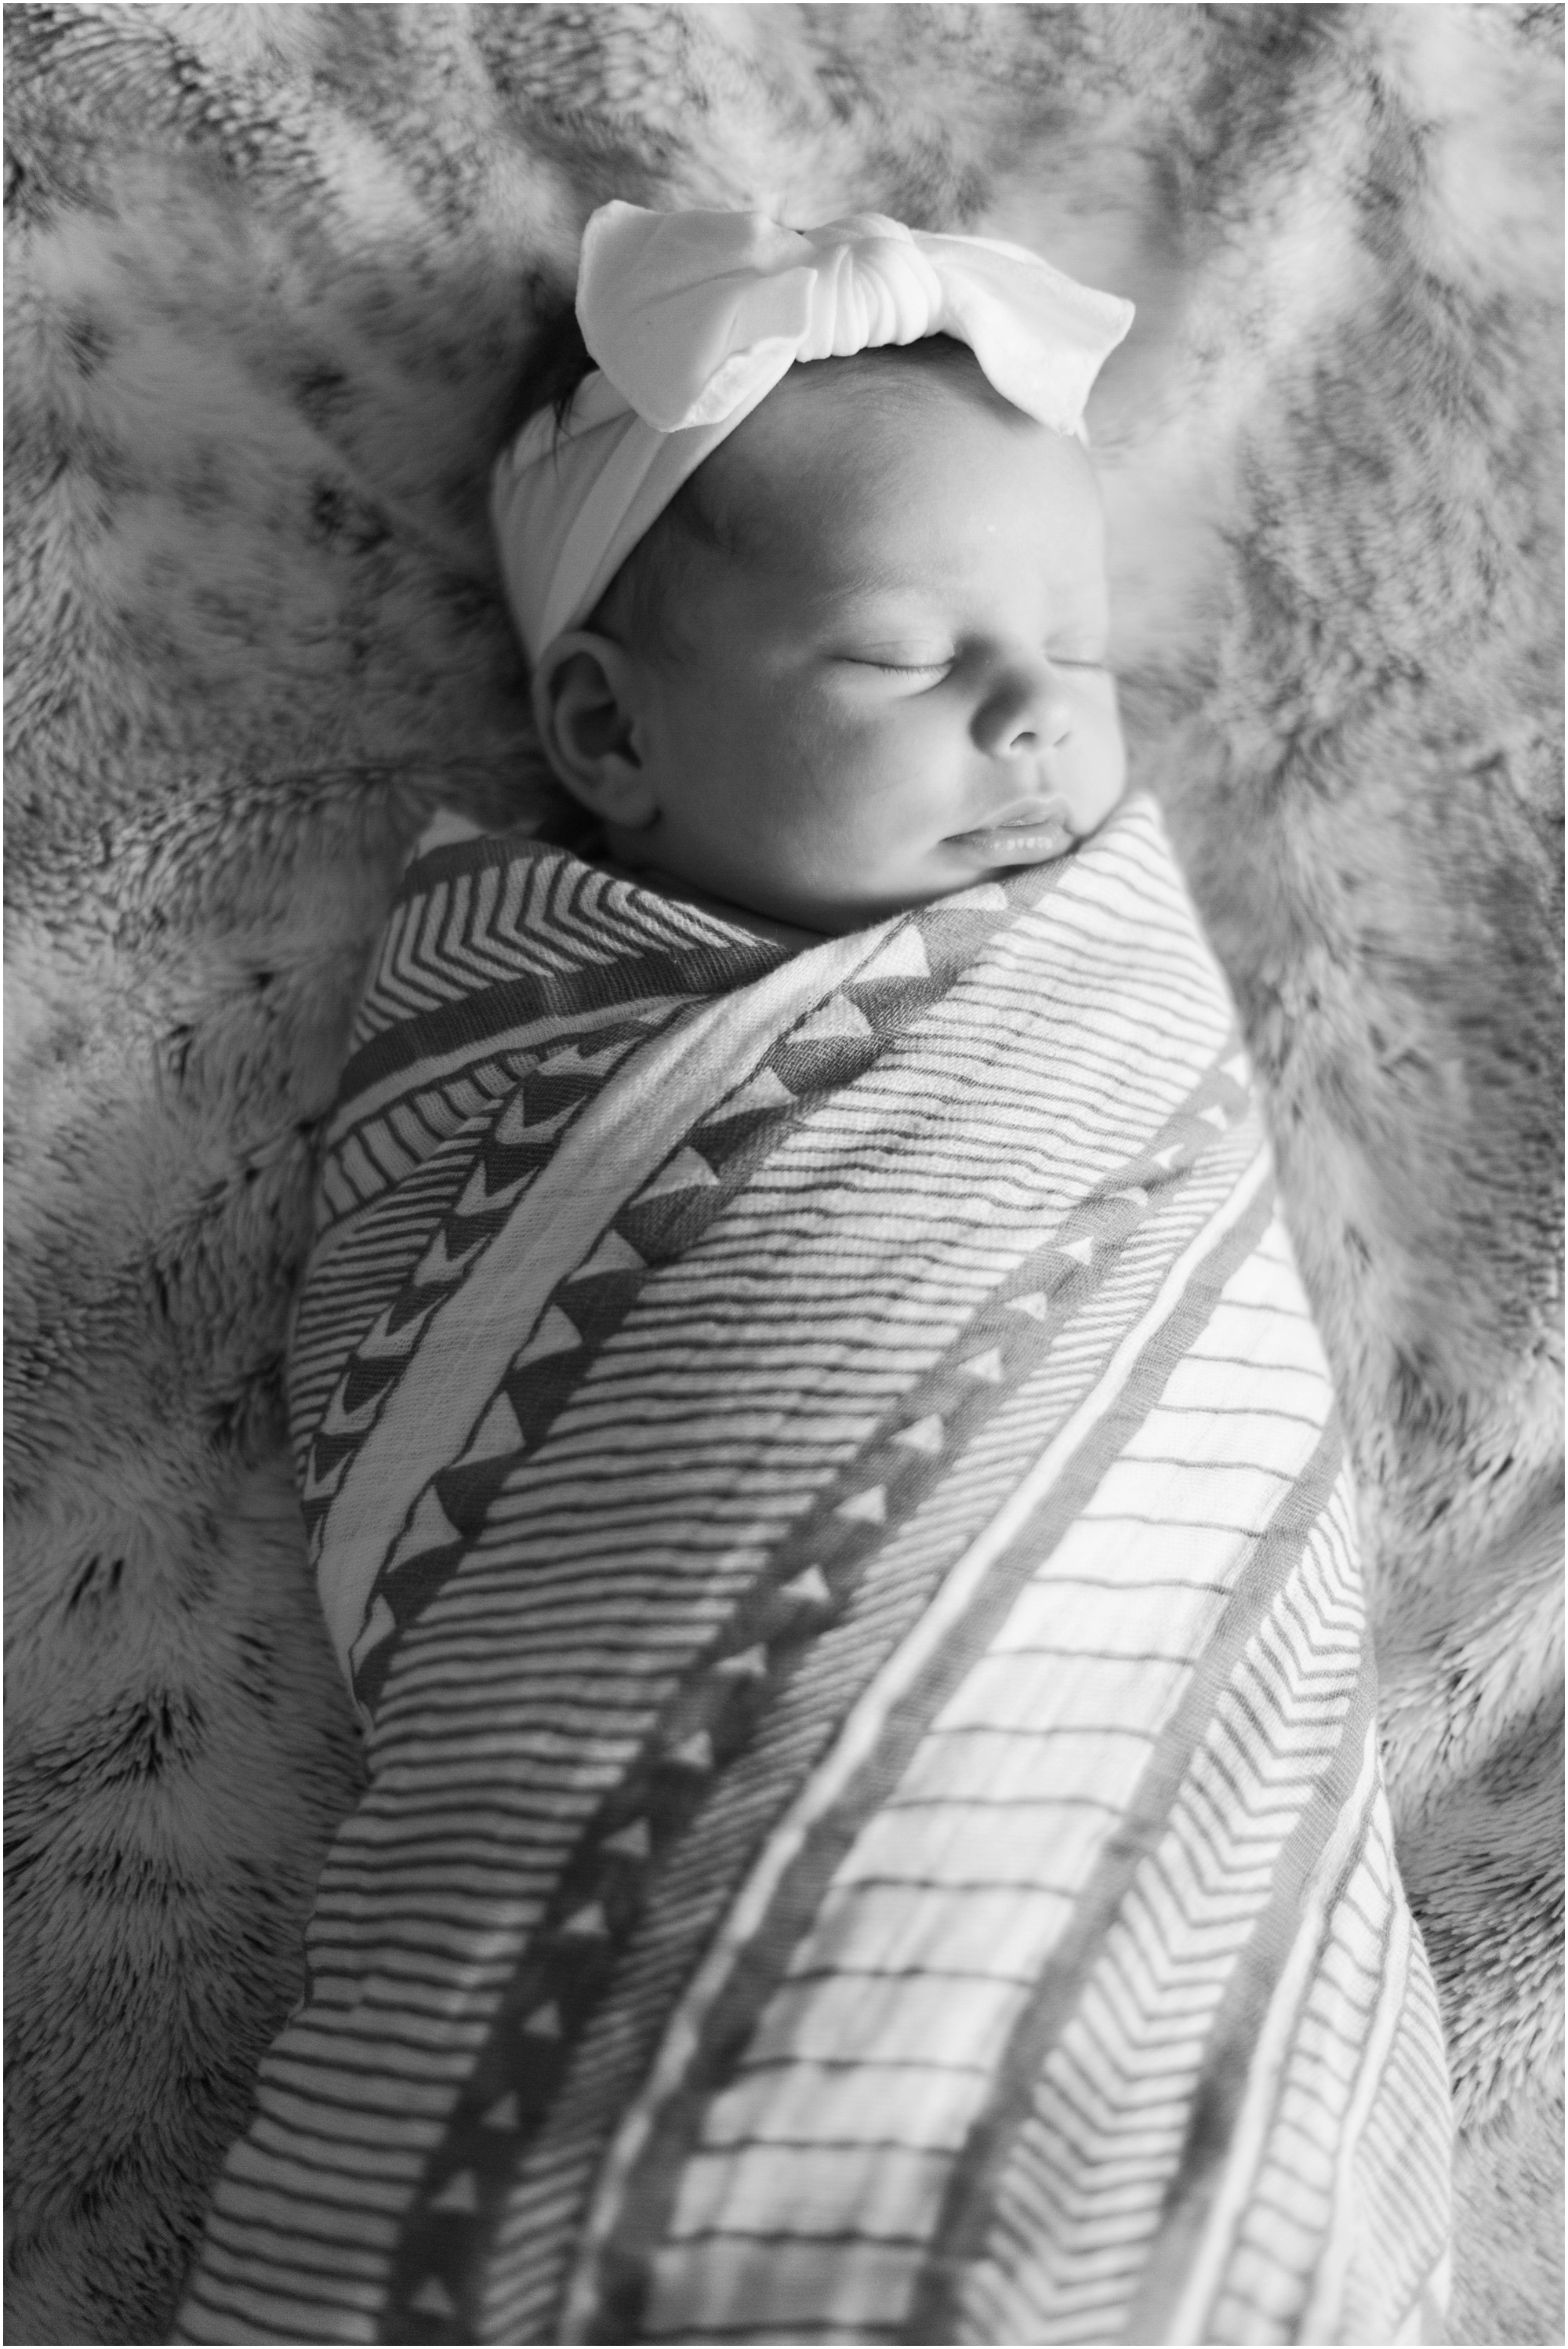 Seattle lifestyle newborn photos by Briana Calderon Photography based in the Greater Seattle & Tacoma, WA_0726.jpg